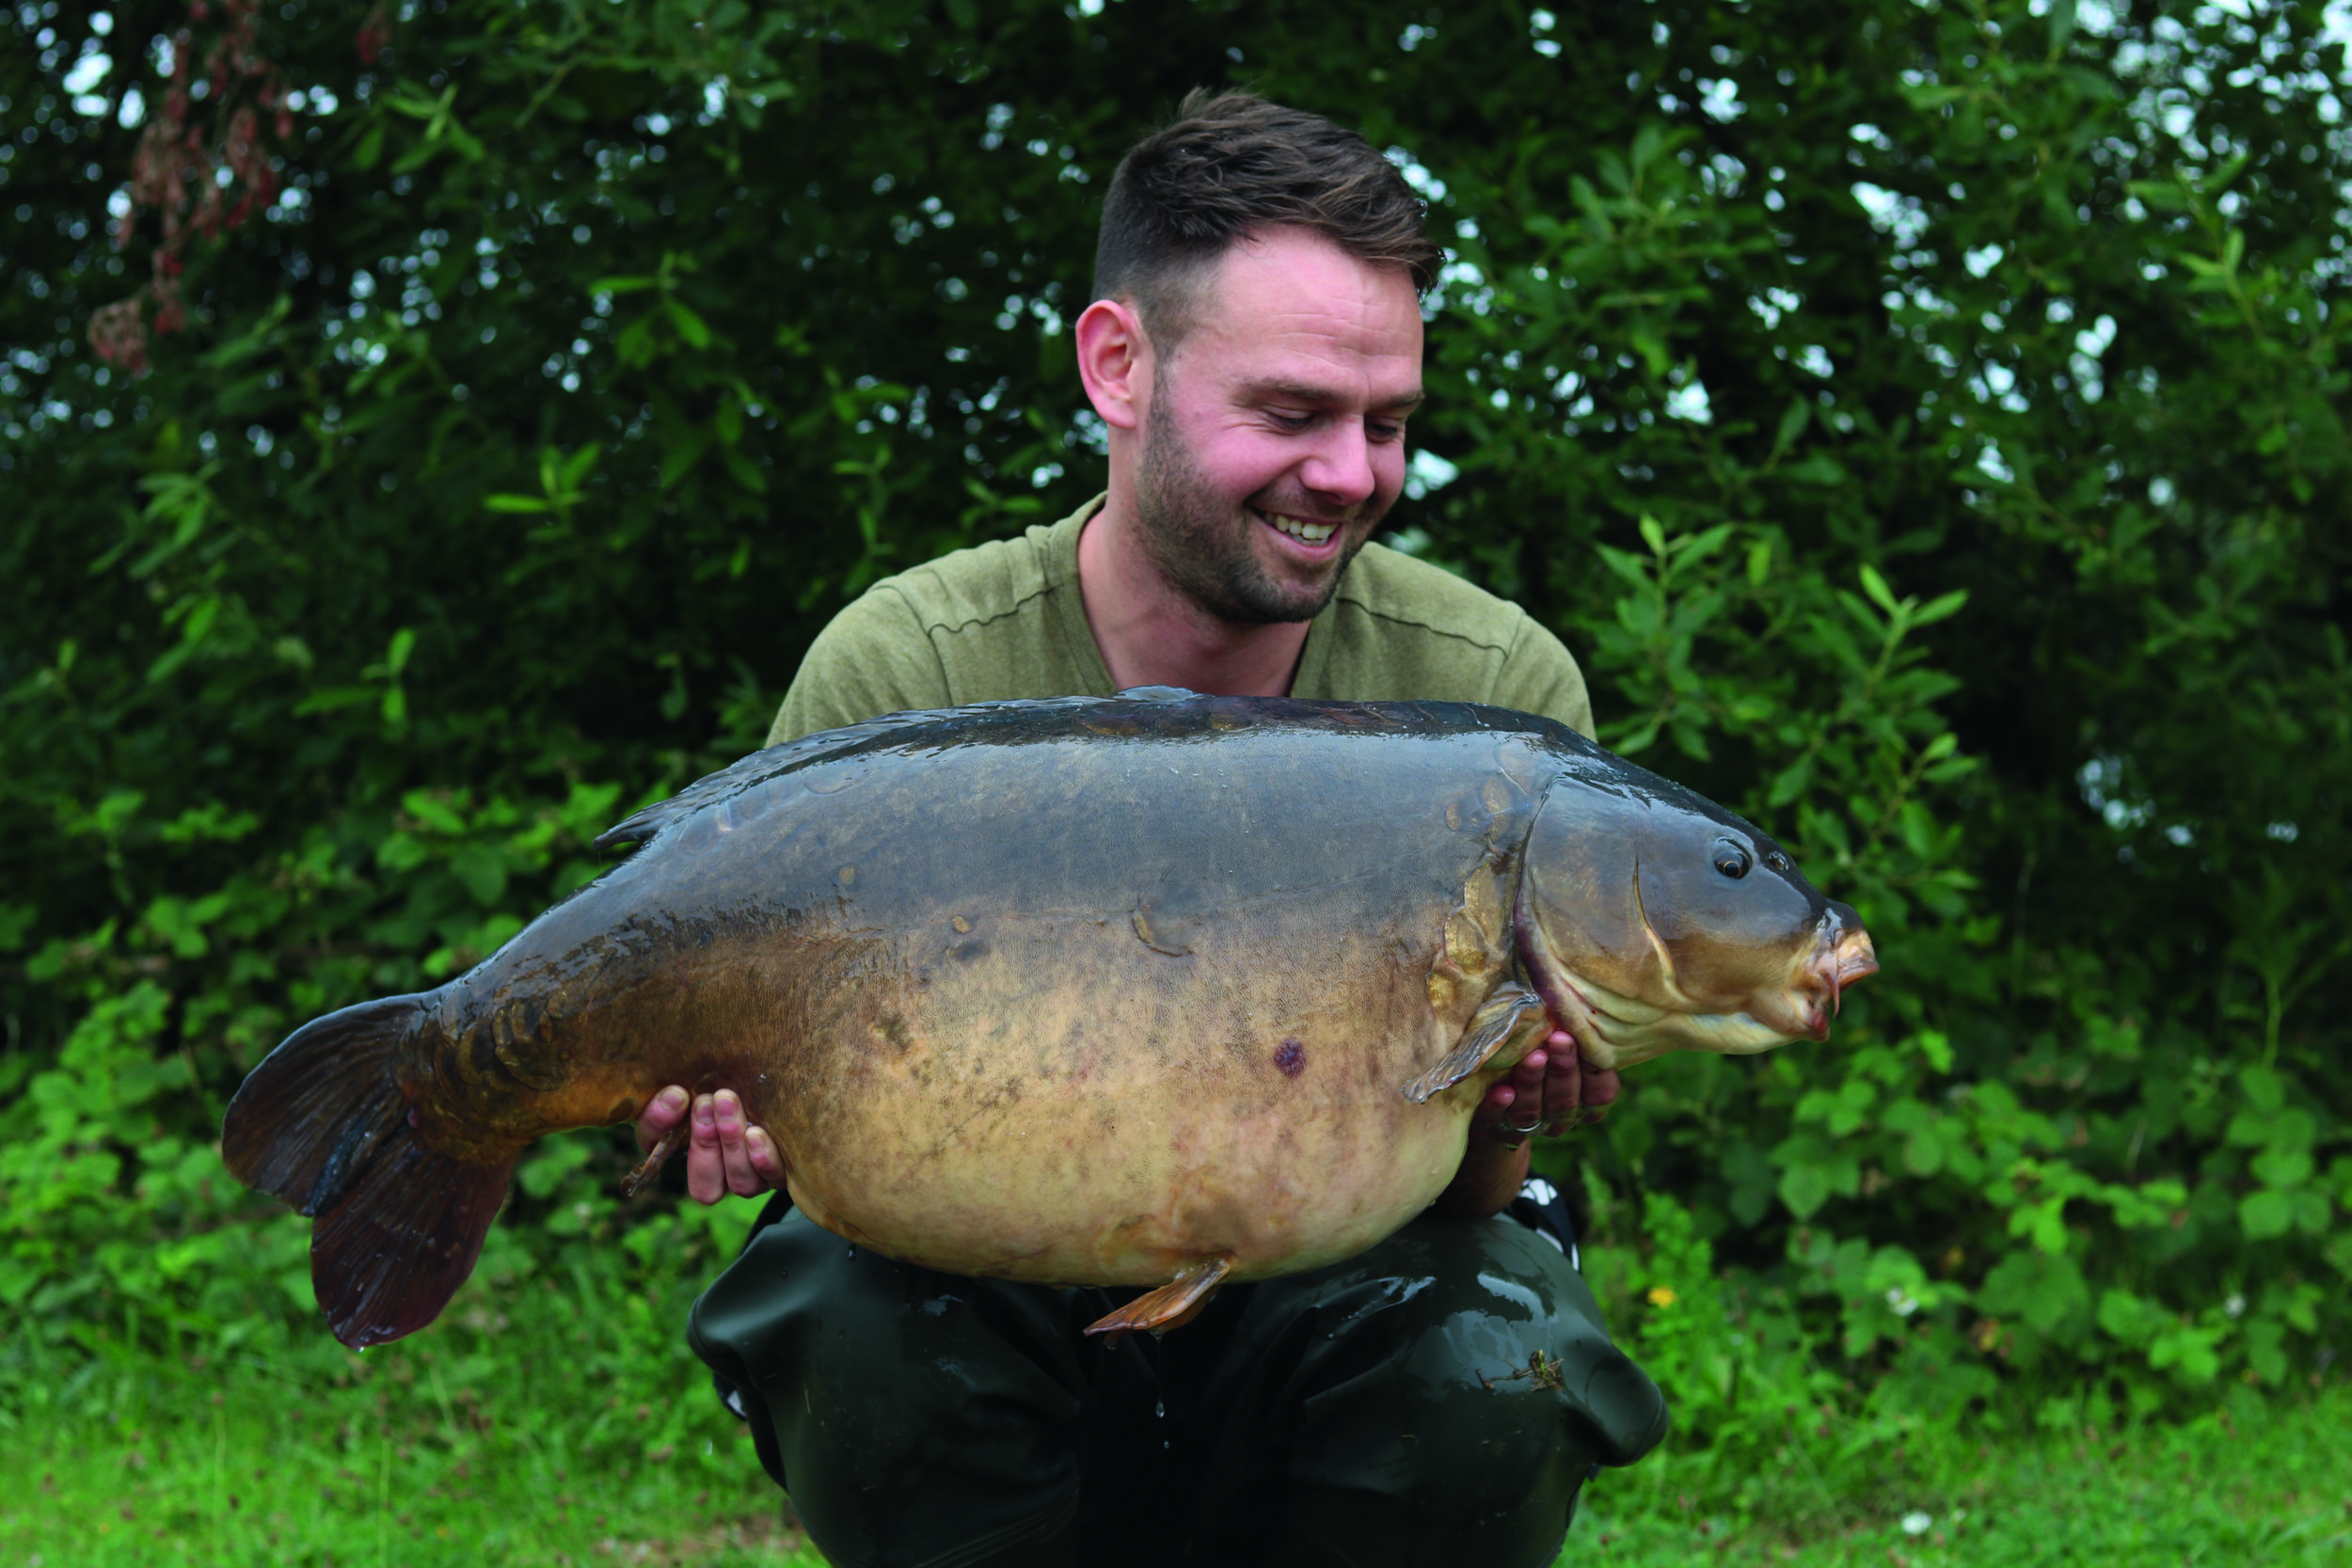 A change of tactics resulted in another Big-Pit jewel.